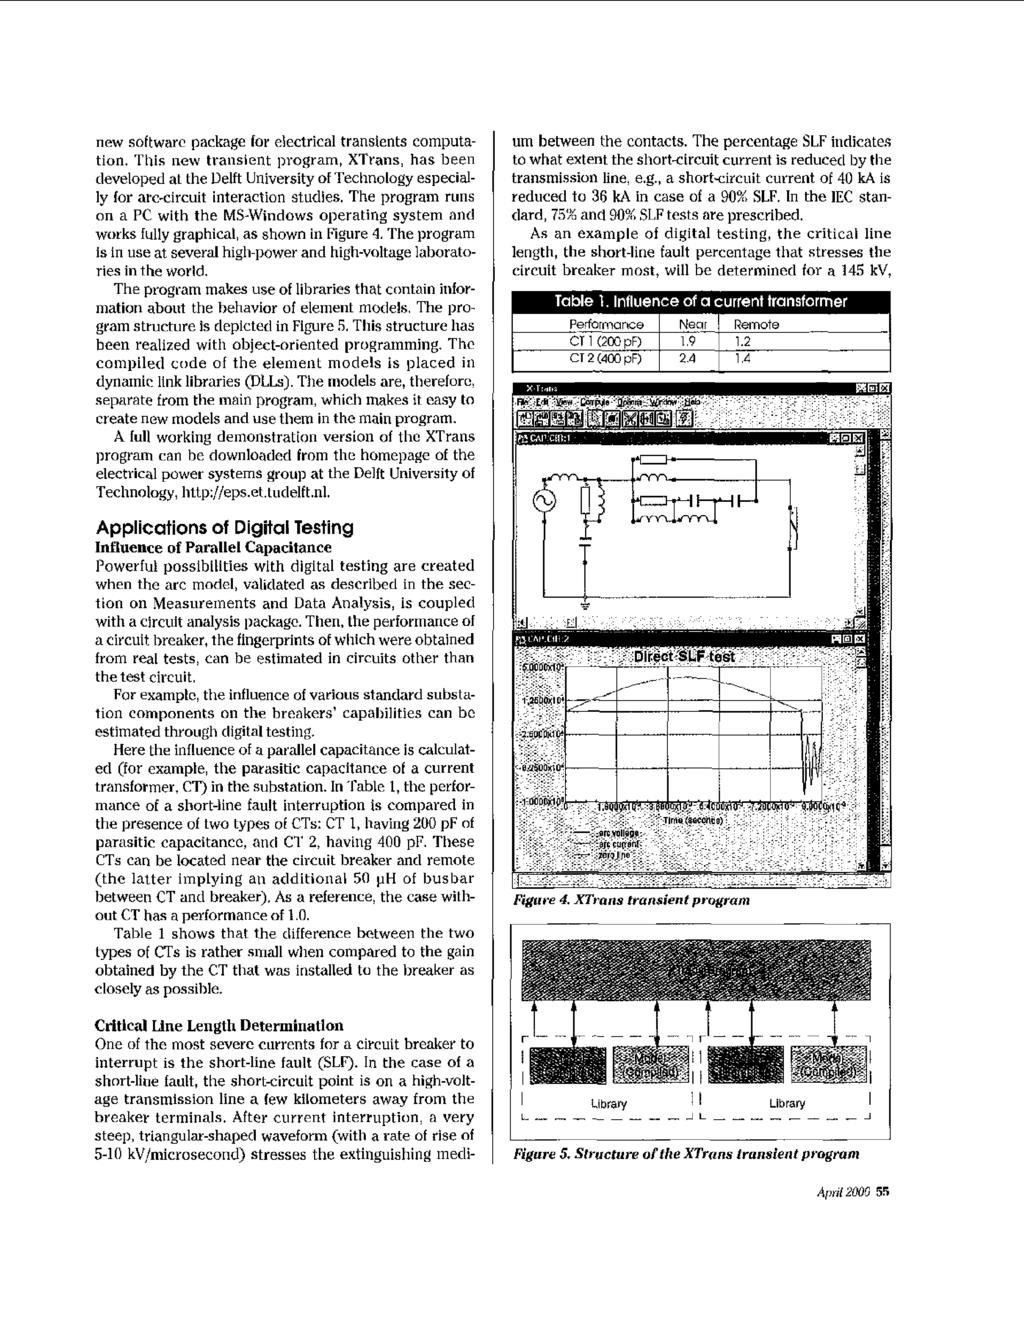 High4oltage Circuit Breakers Pdf Arc New Softwarc Package Lor Electrical Transients Computation This Transient Program Xtrans Has